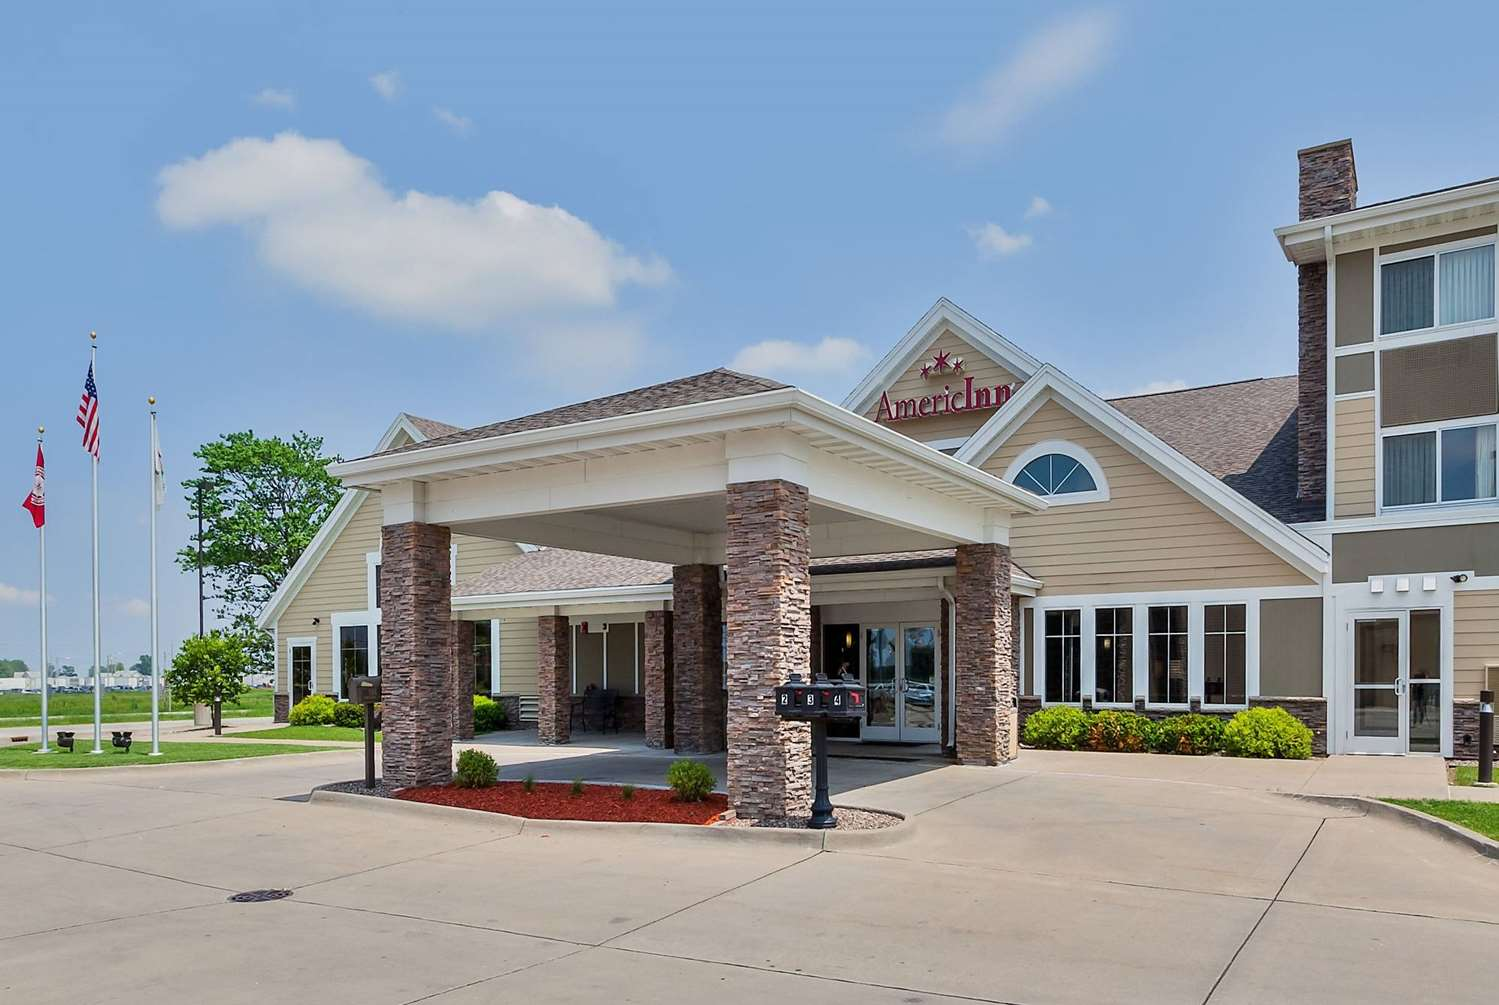 Americinn Lodge Suites Monmouth Il See Discounts